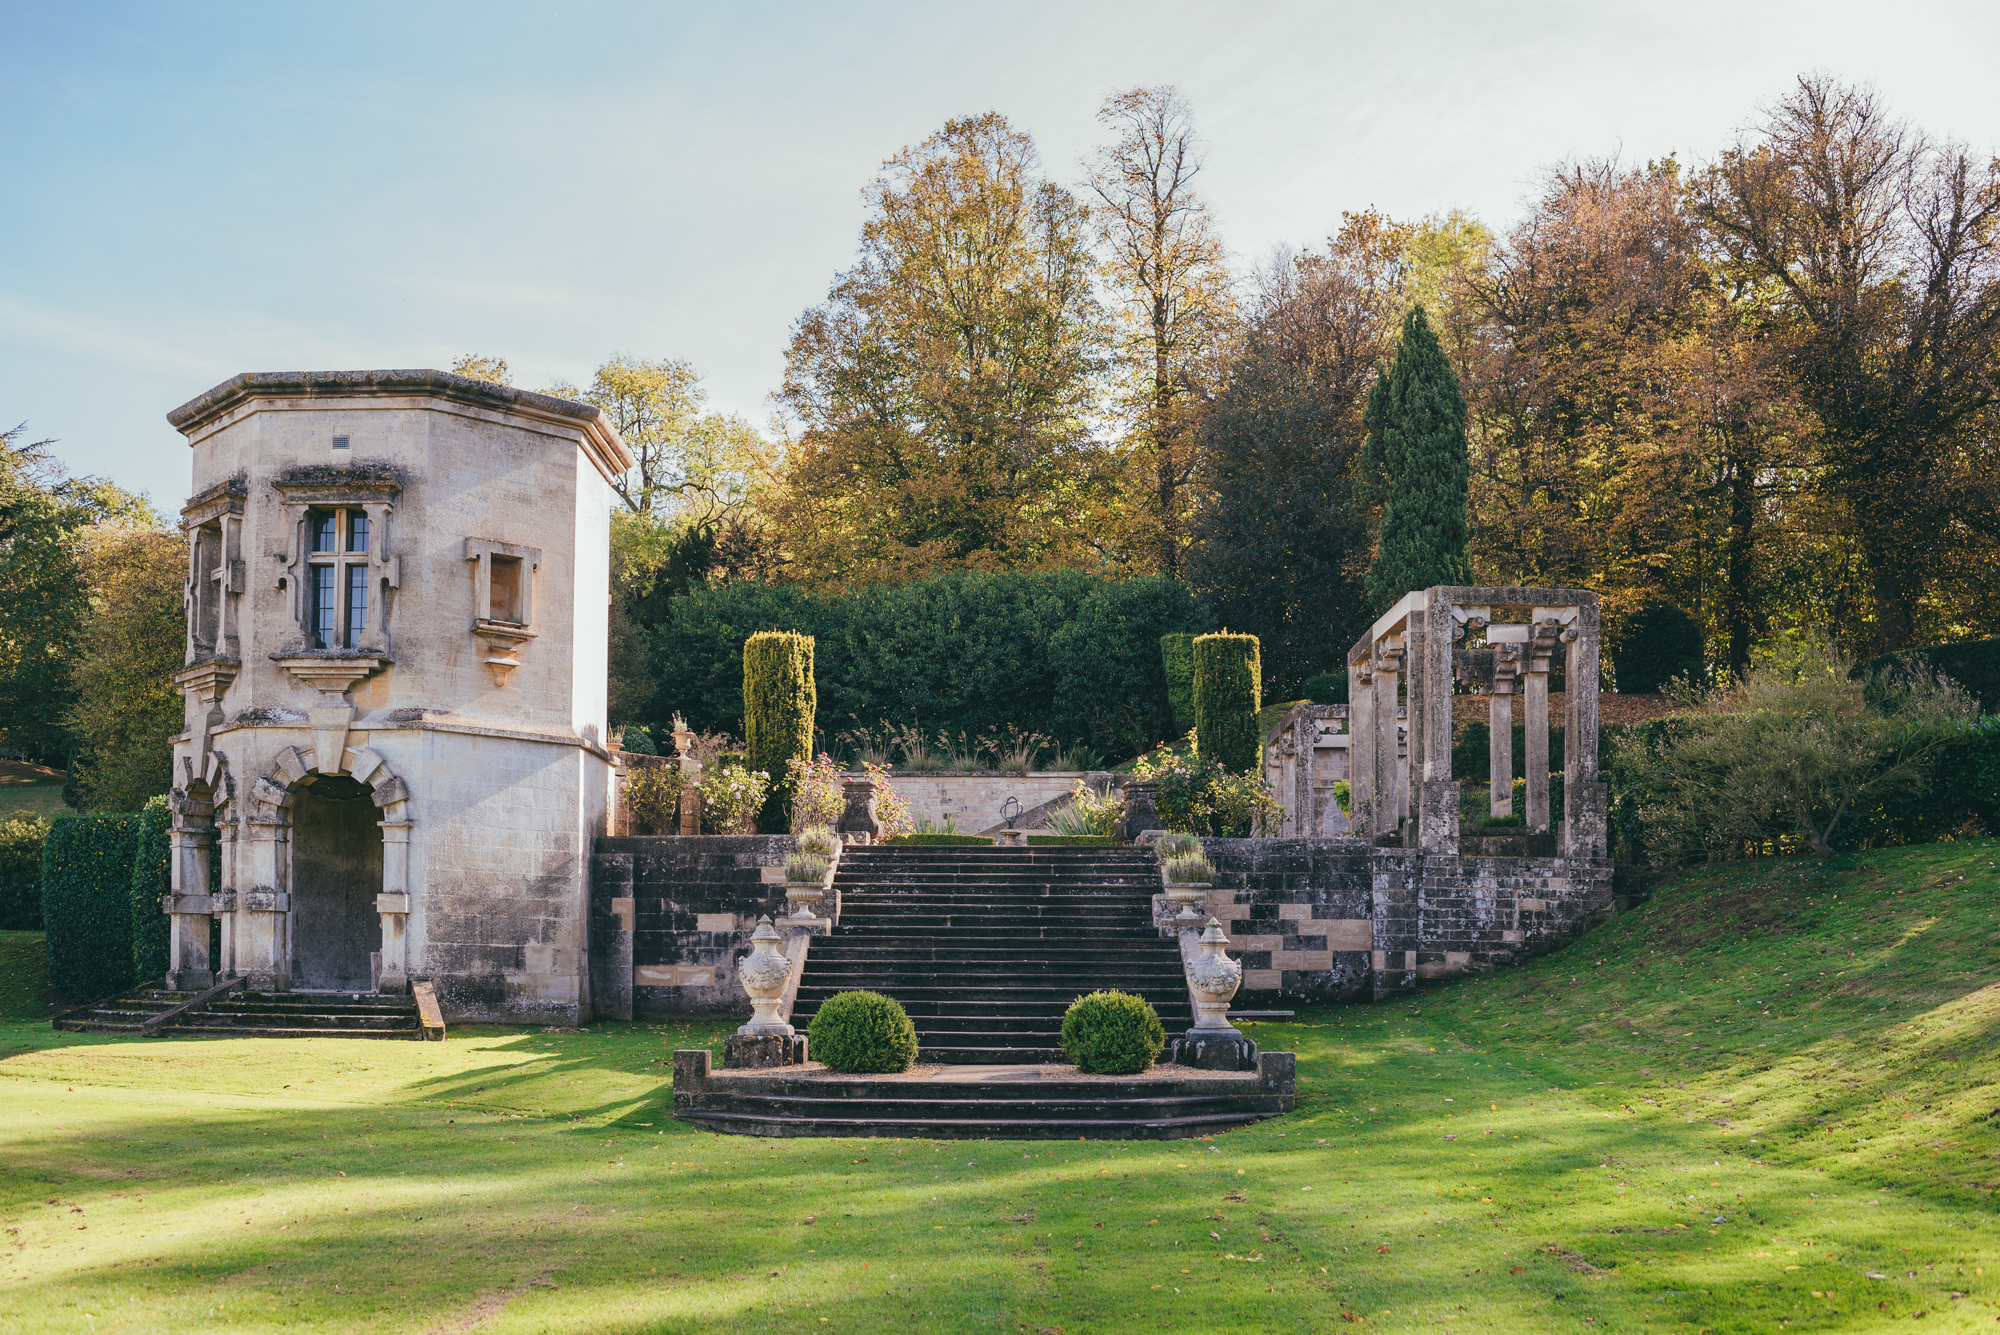 The grounds at harlaxton manor